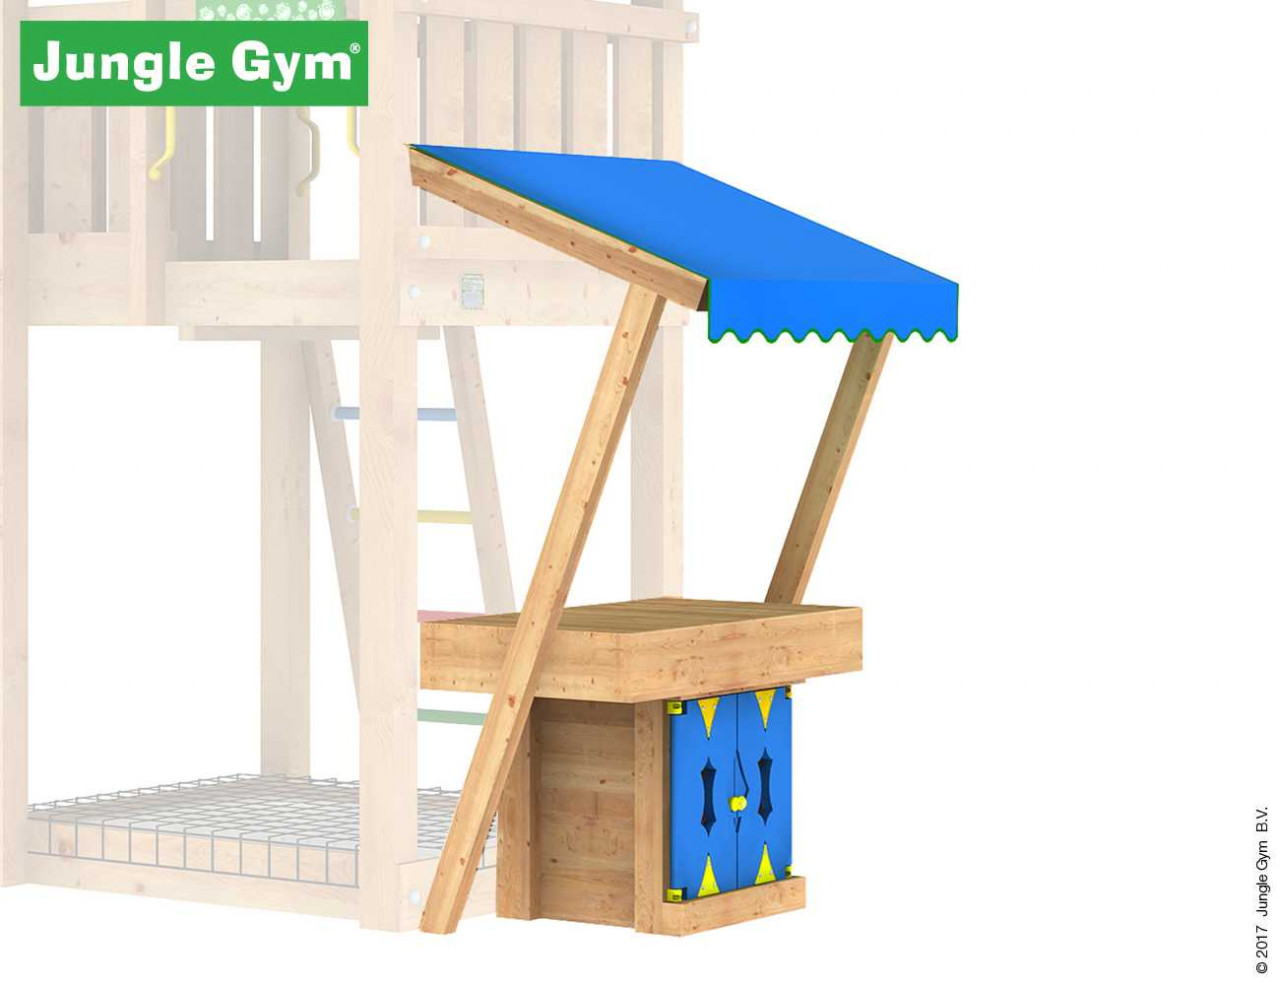 Jungle Gym Markt Modul